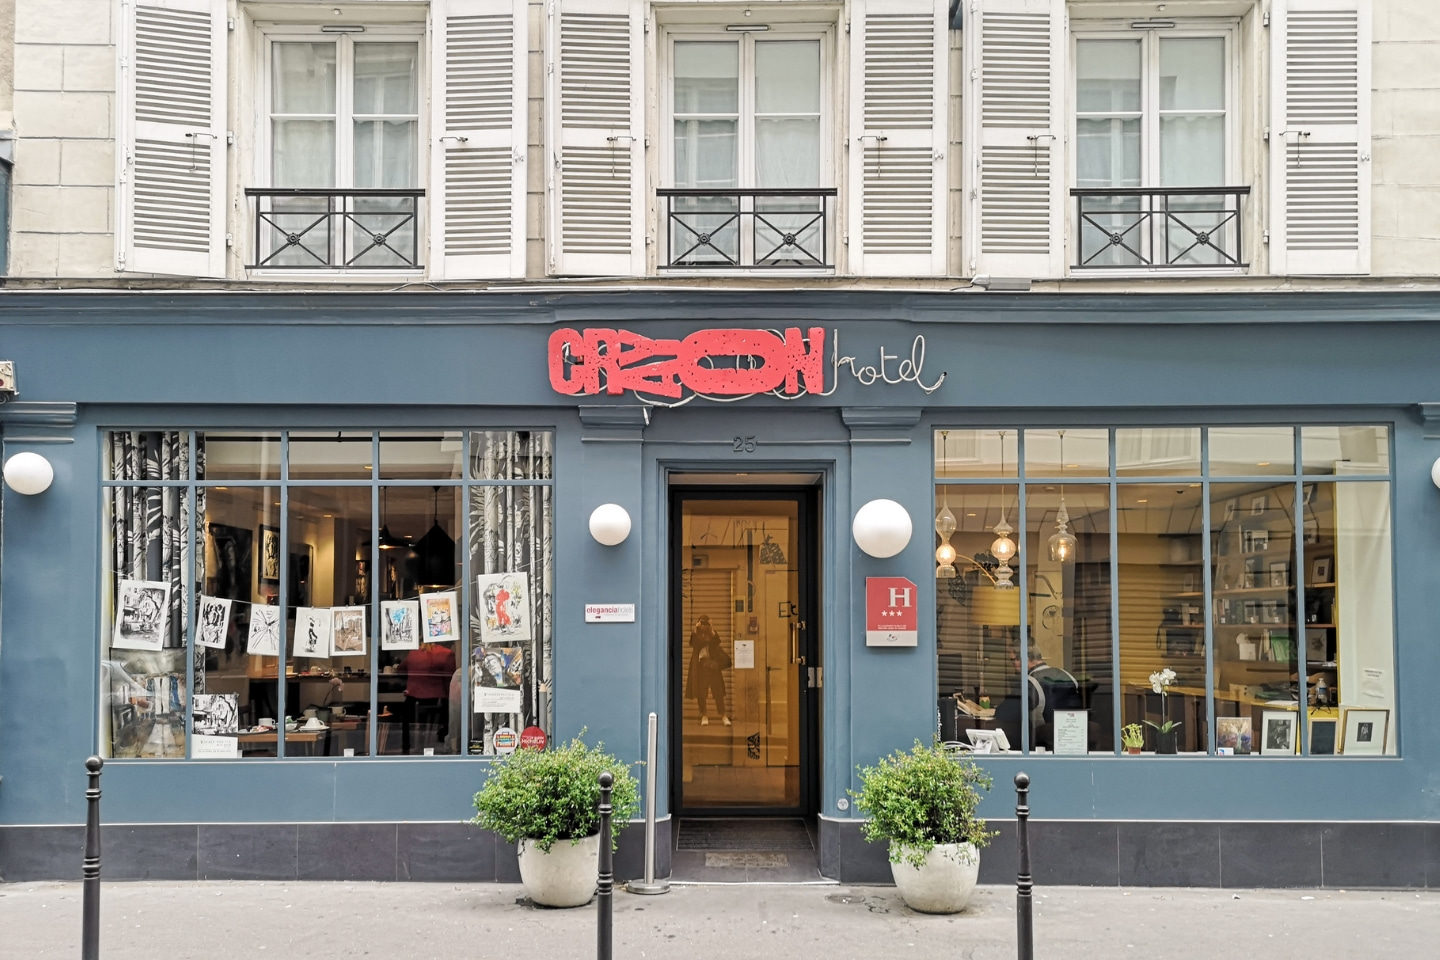 Hotel Crayon, Paris, Paris Hotel, Budget Hotel In Paris, Affordable Hotel In Paris, Boutique Hotel, Travel Review, Hotel Review, Travel Blog